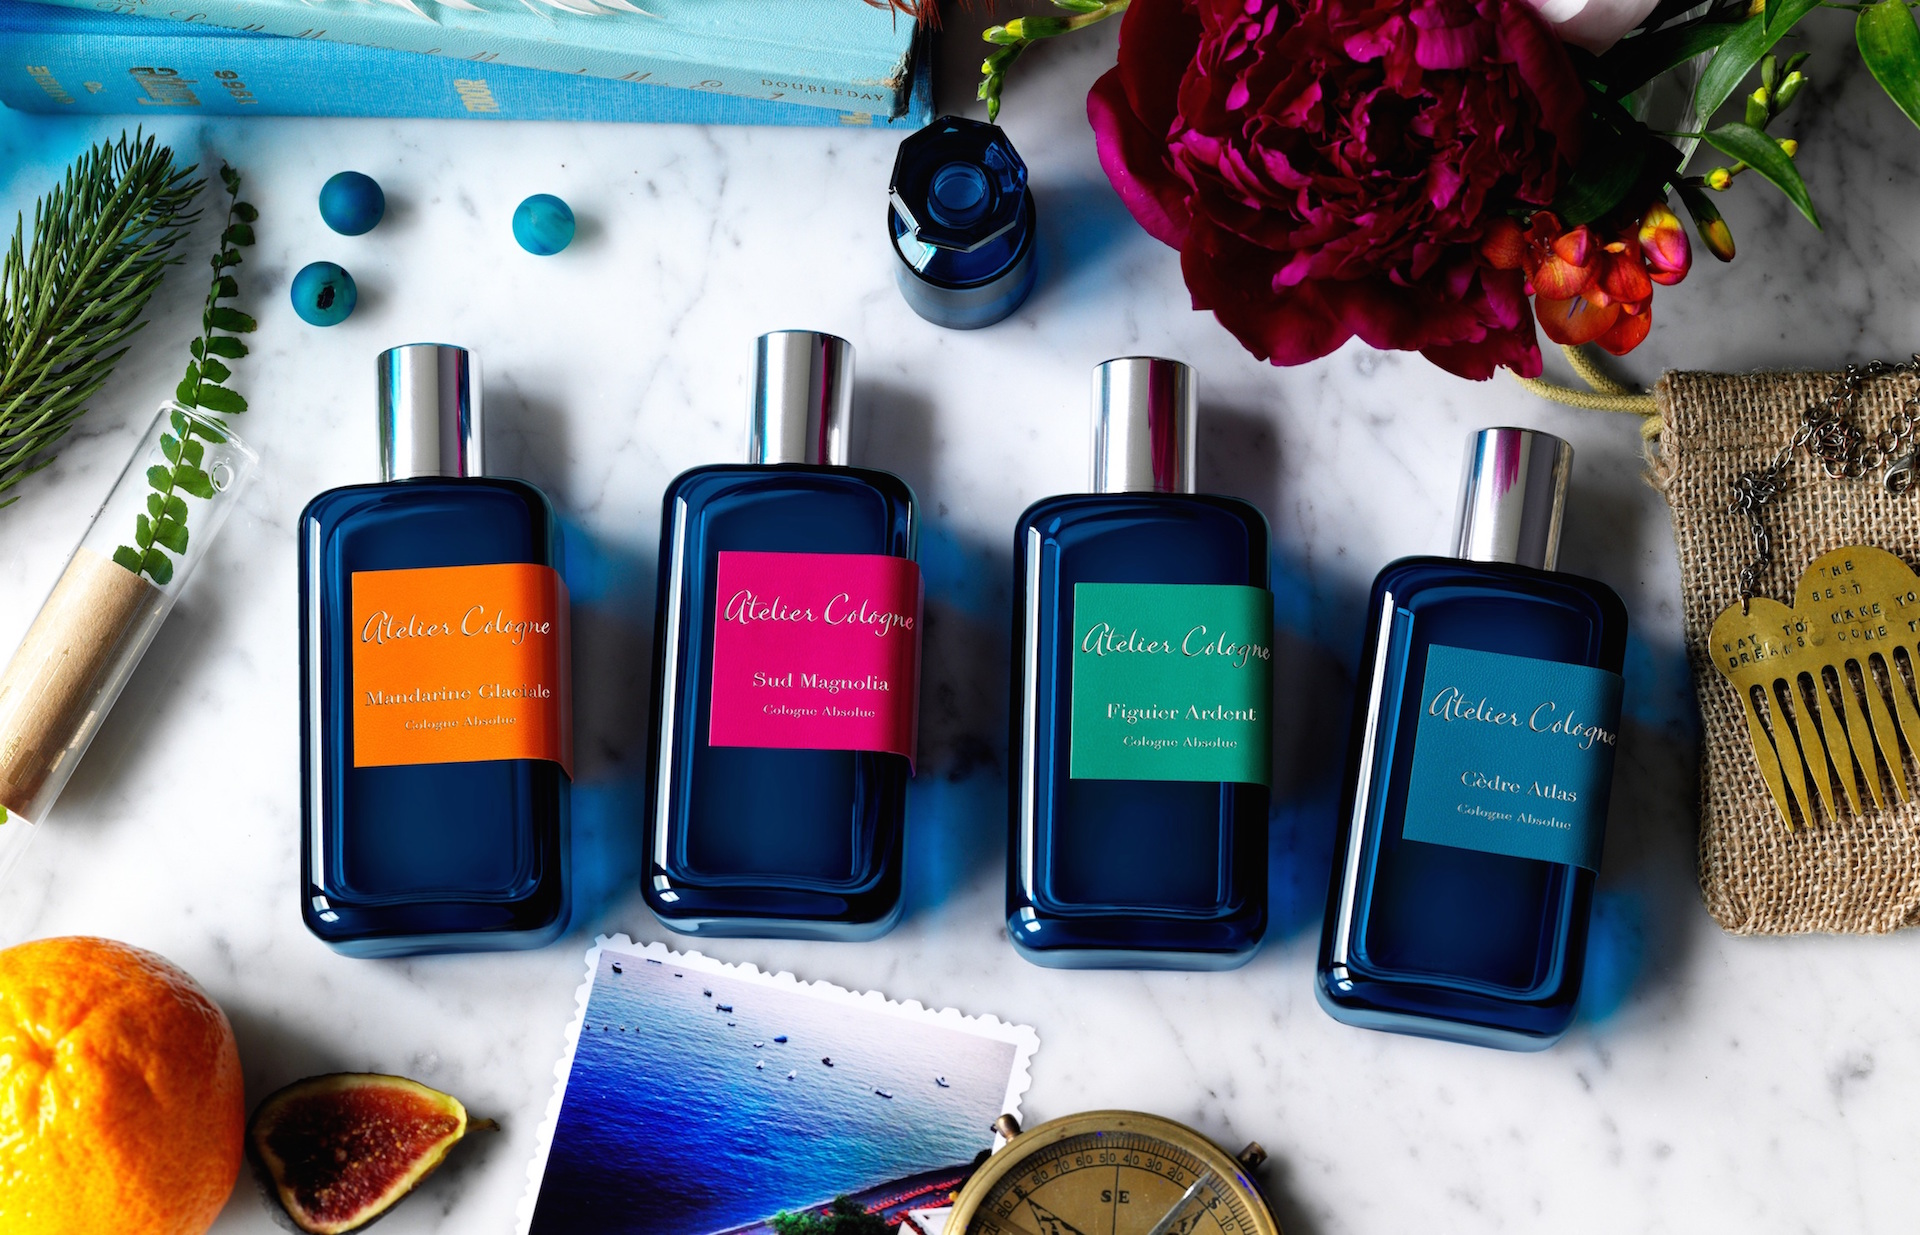 « Azur », la nouvelle collection d'Atelier Cologne